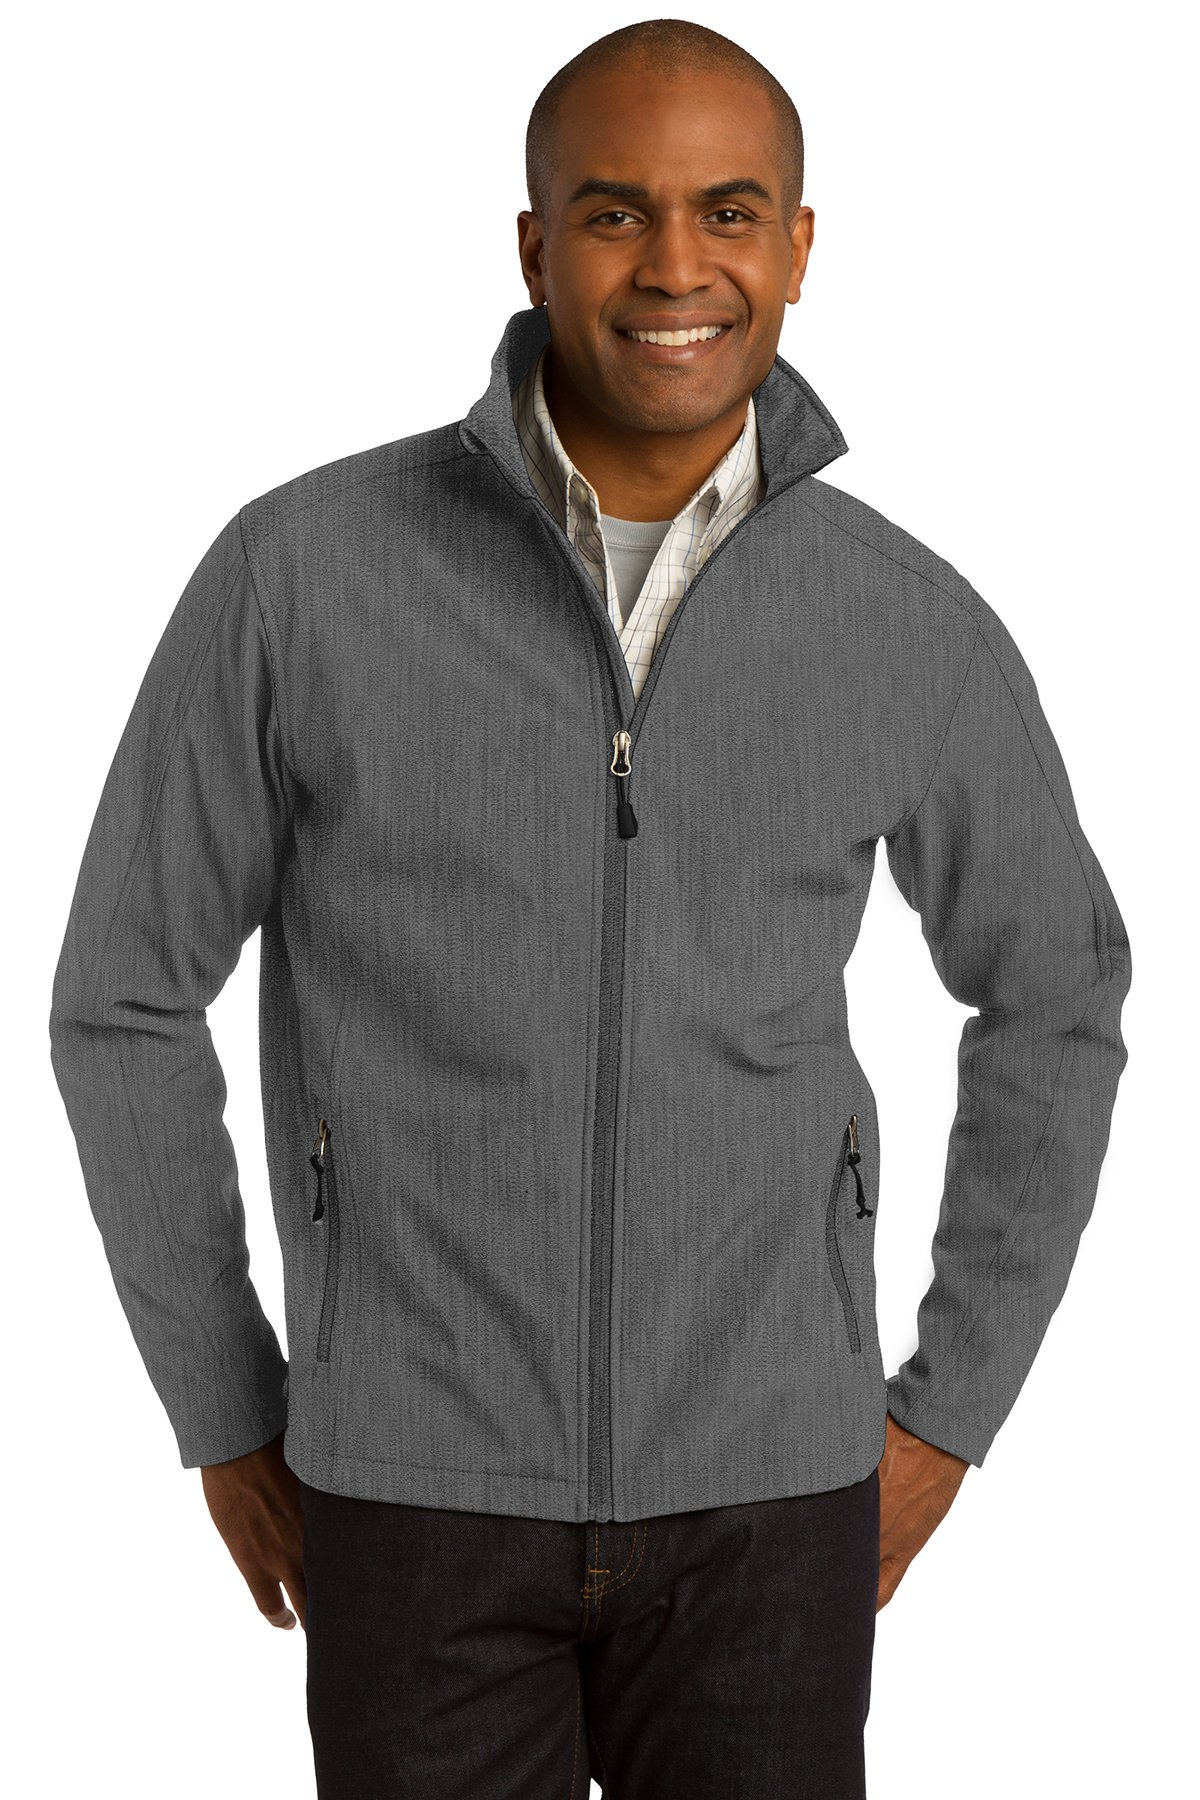 Port Authority Core Soft Shell Jacket - J317 (Black Charcoal Heather, L)